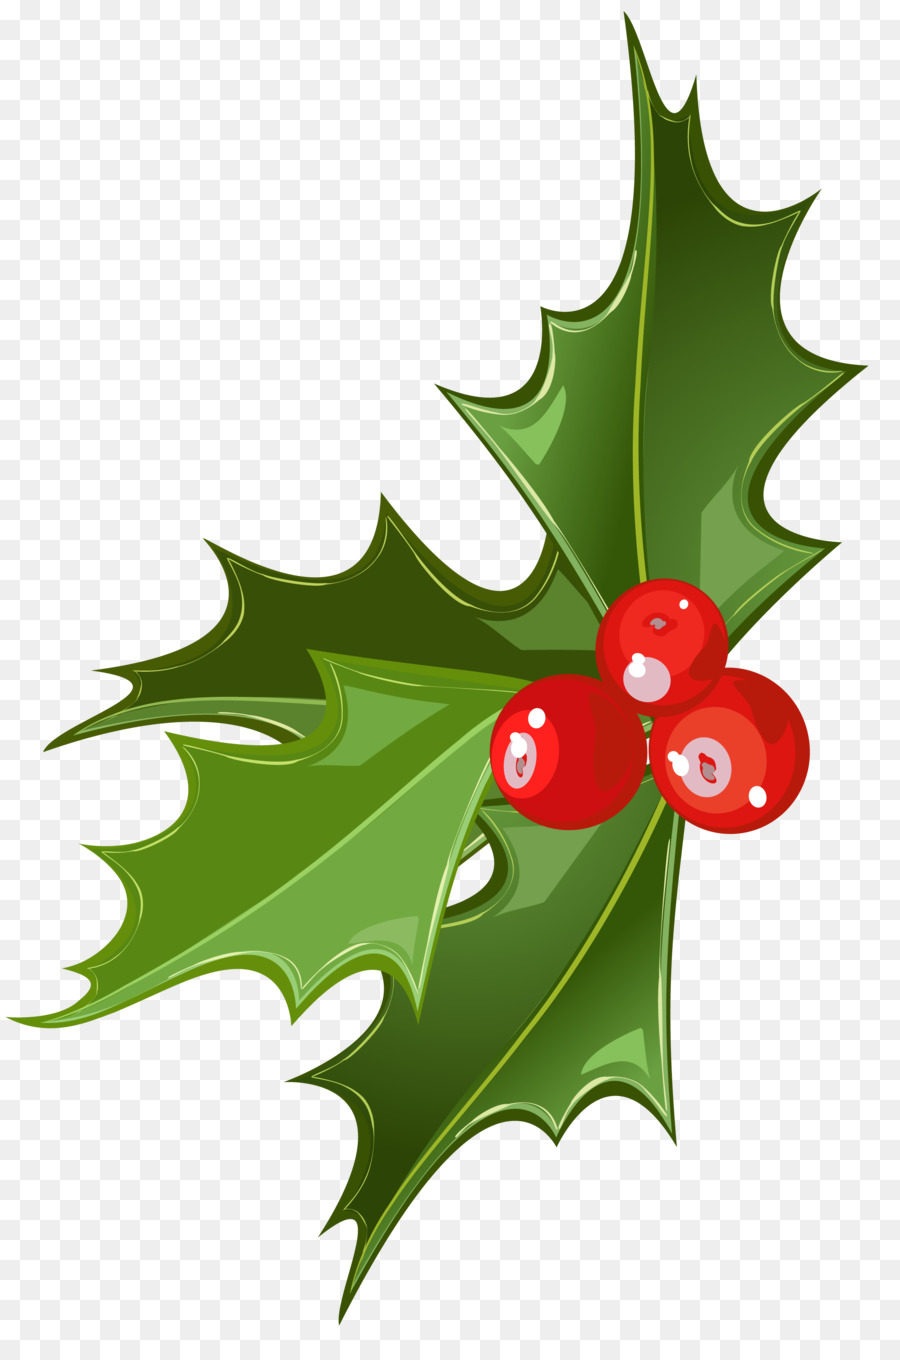 The three main Christmas symbols are mistletoe, holly and striped mint cane-shaped candy